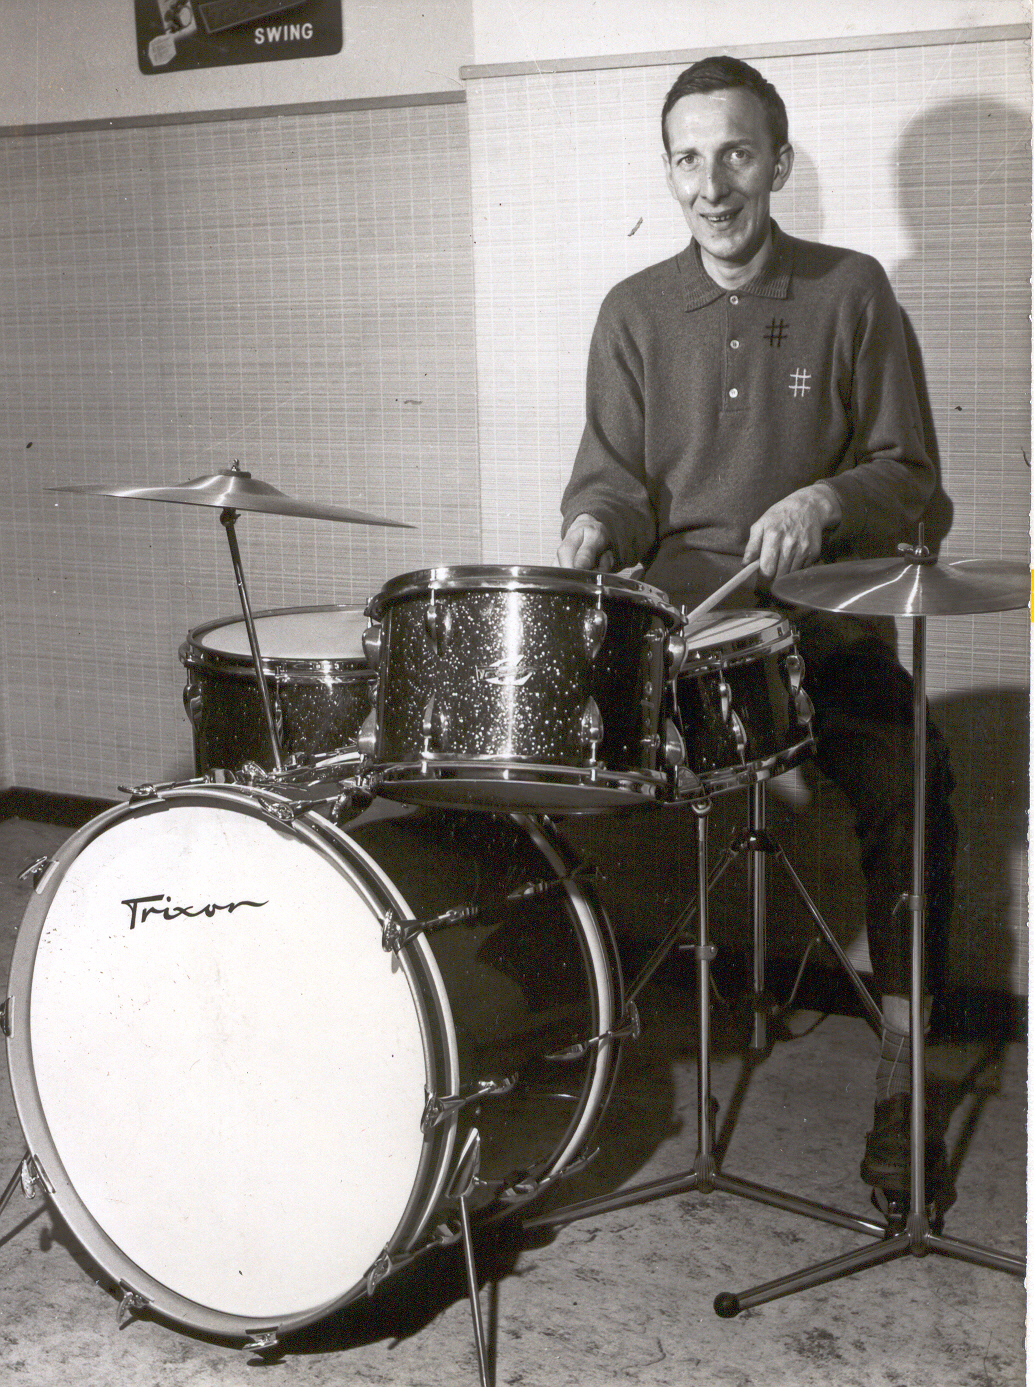 Phil Seamen 1958, Trixon Drums Endorsement